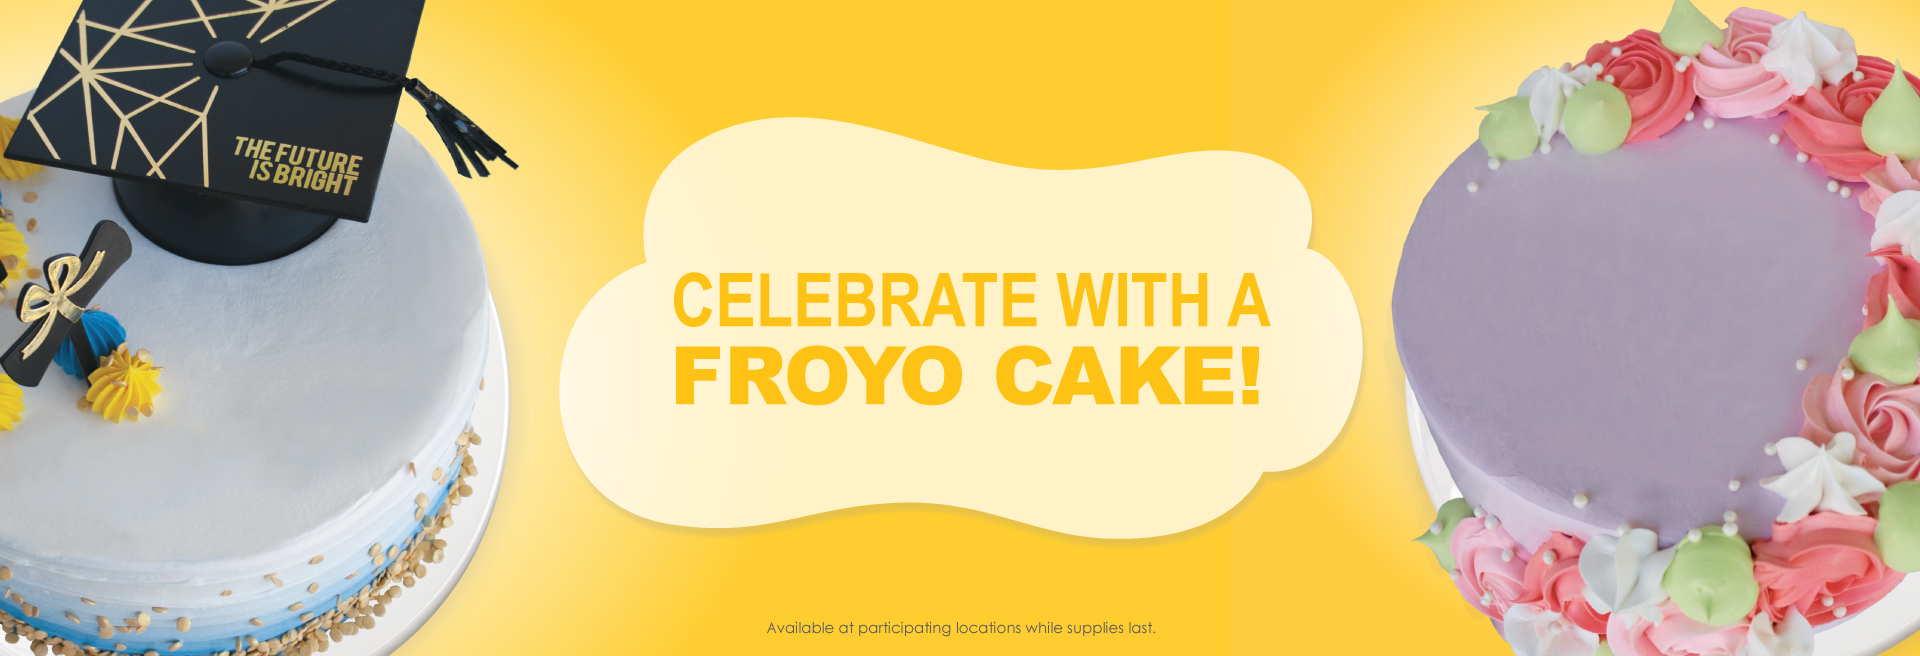 Celebrate the moms and grads in your life with one of our delicious froyo cakes. Customize their cakes with their favorite froyo flavors and toppings.